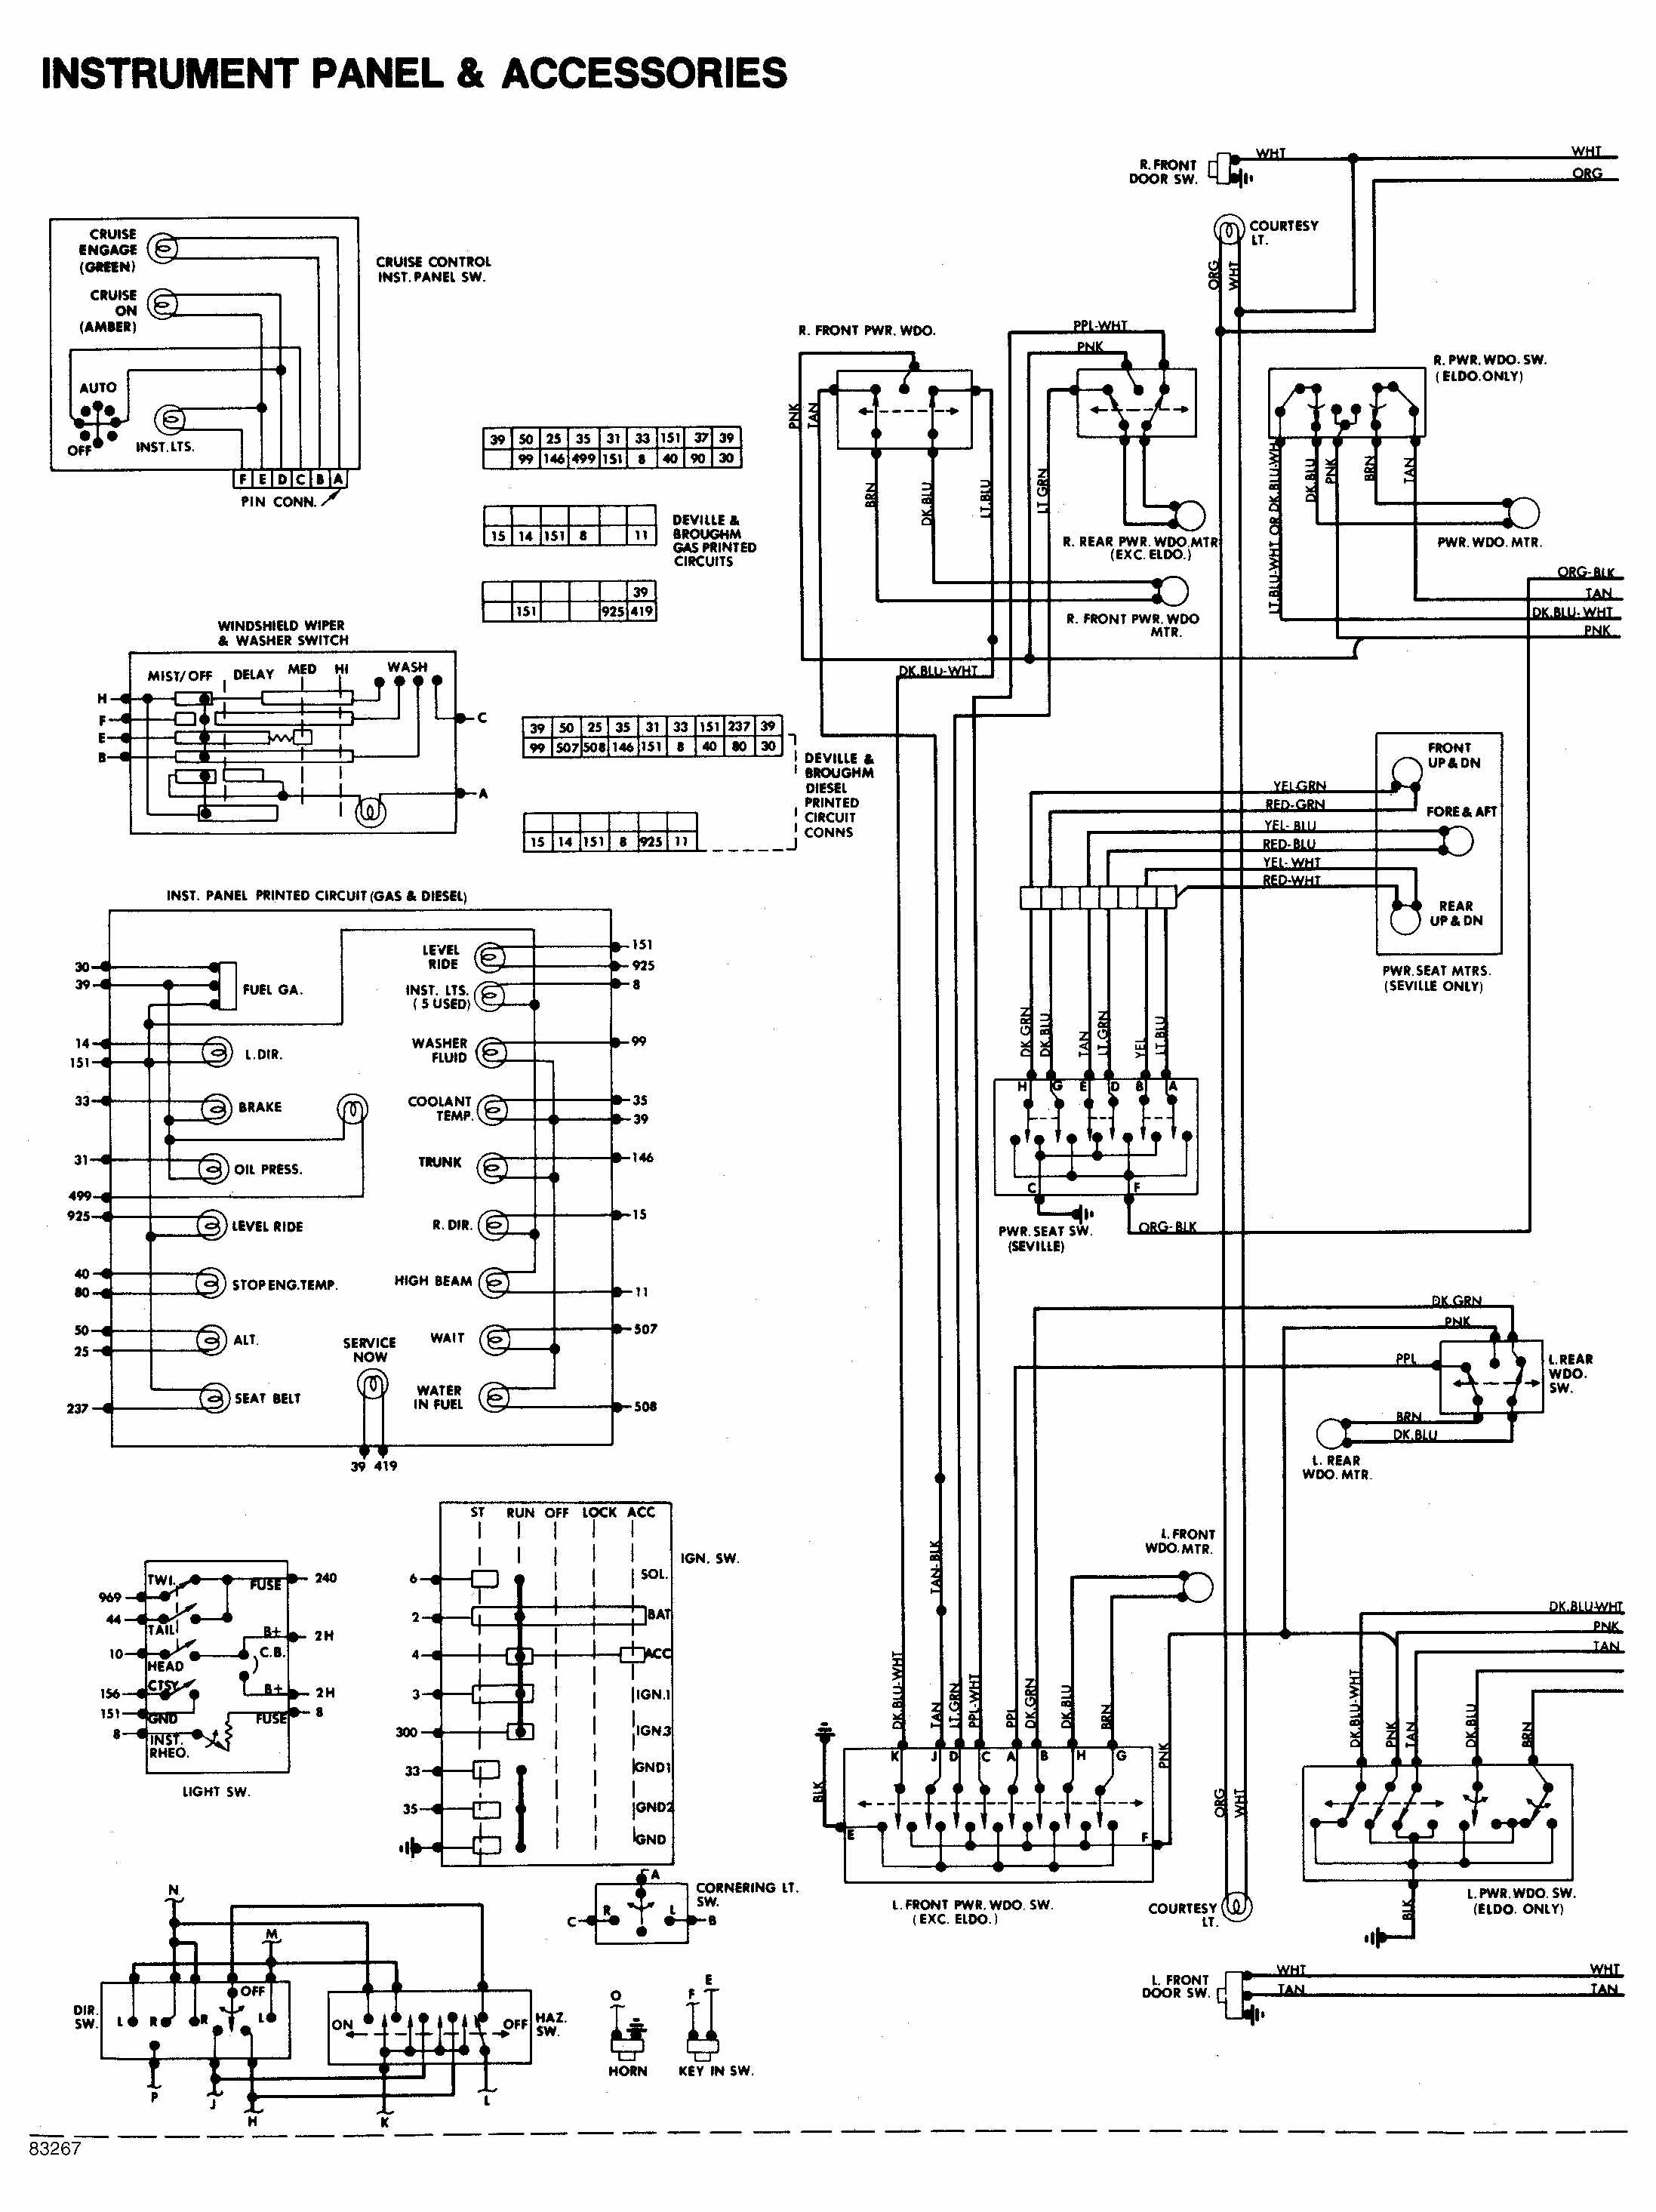 instrument panel and accessories wiring diagram of 1984 cadillac deville gm wiring diagrams gm wiring diagrams online \u2022 wiring diagrams j Ford 4600 Wiring Schematic at nearapp.co